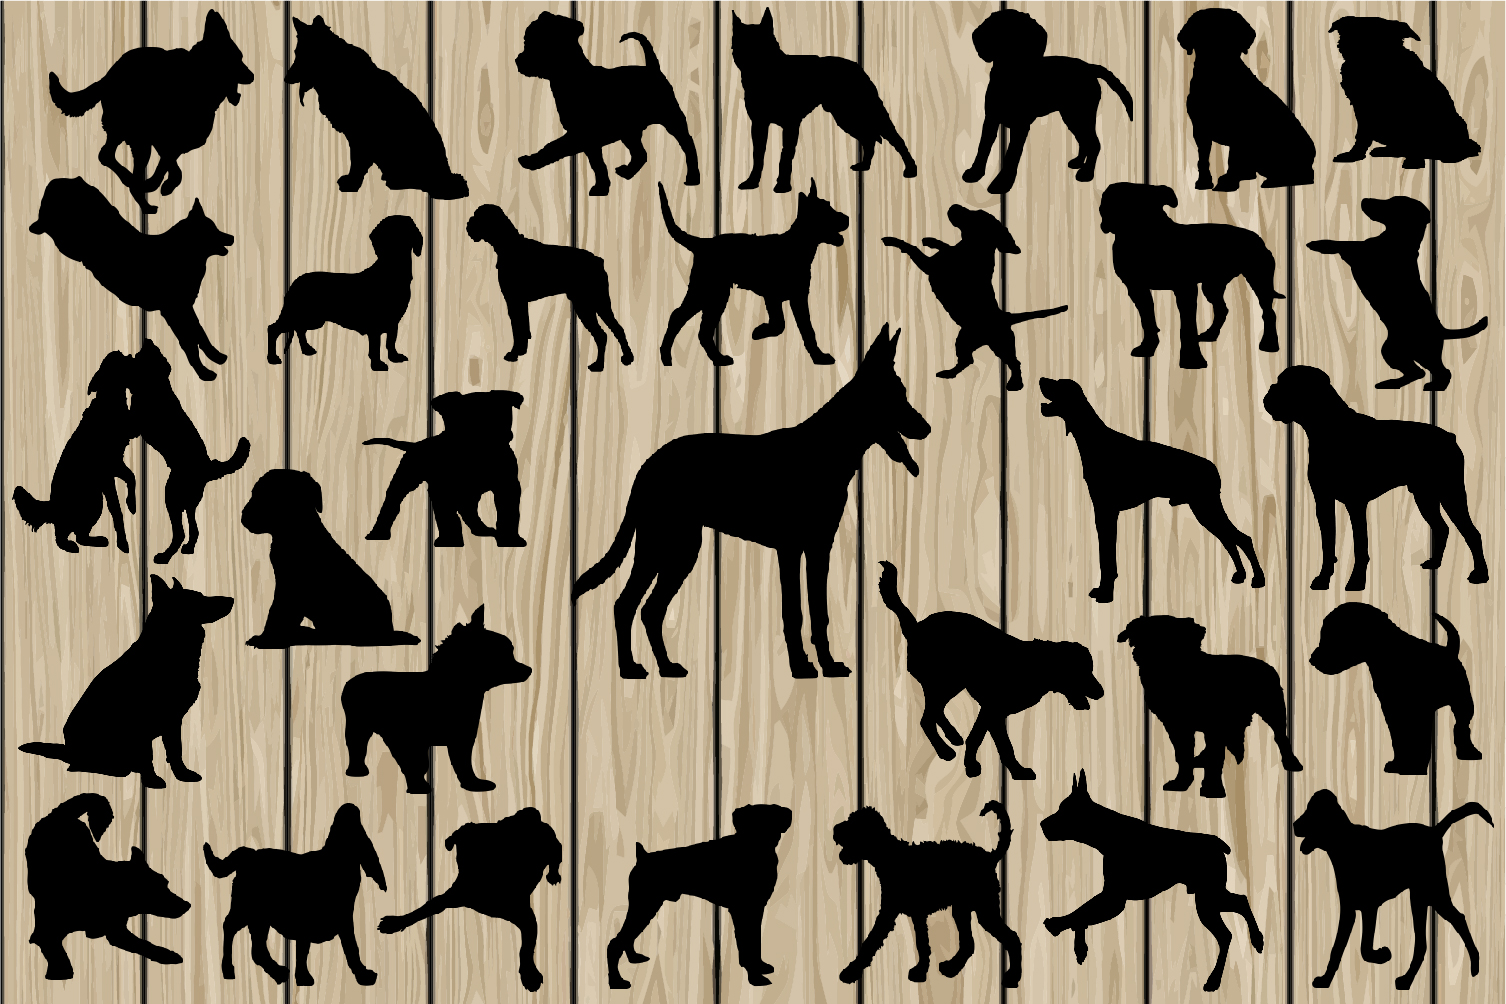 32 Dog SVG Cutting files, Mini Package, Dog Silhouette Clipart, Dog DXF, Dog Vector, Dog EPS, Dog Png, Dog Printable, Pet Svg, Puppy Svg. example image 1